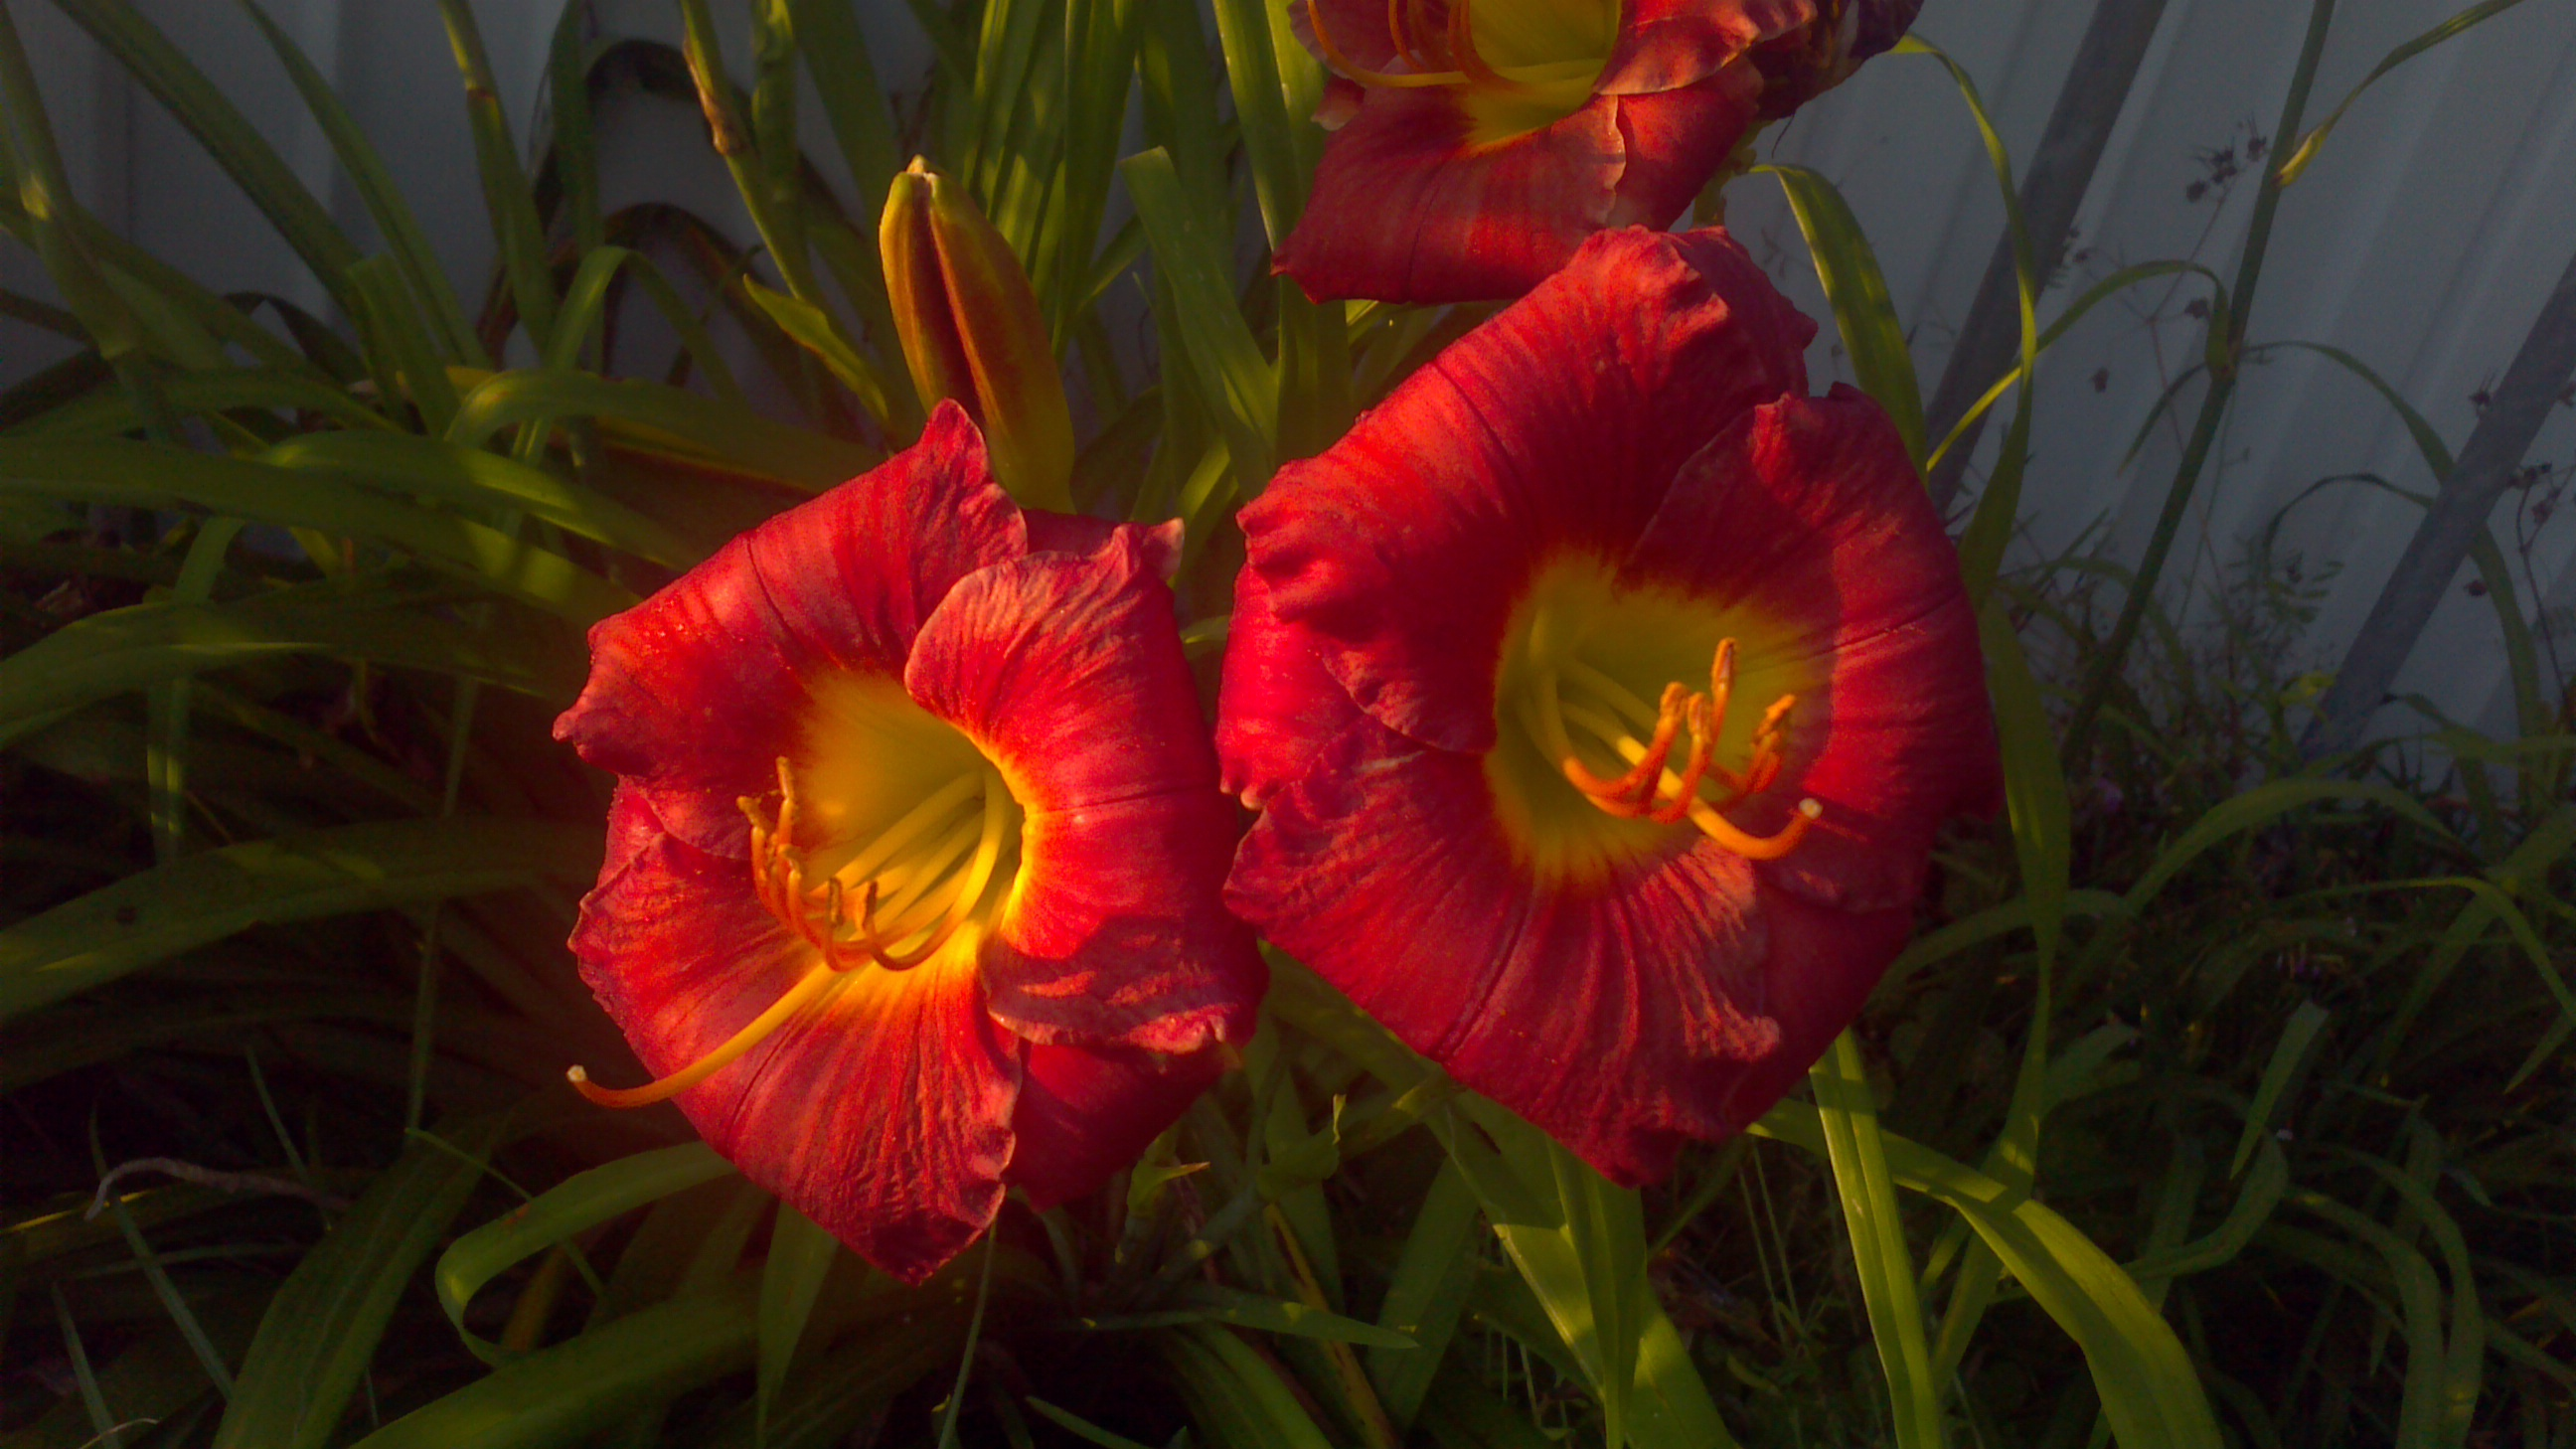 Red Lilies, Bloom, Blossom, Flower, Garden, HQ Photo